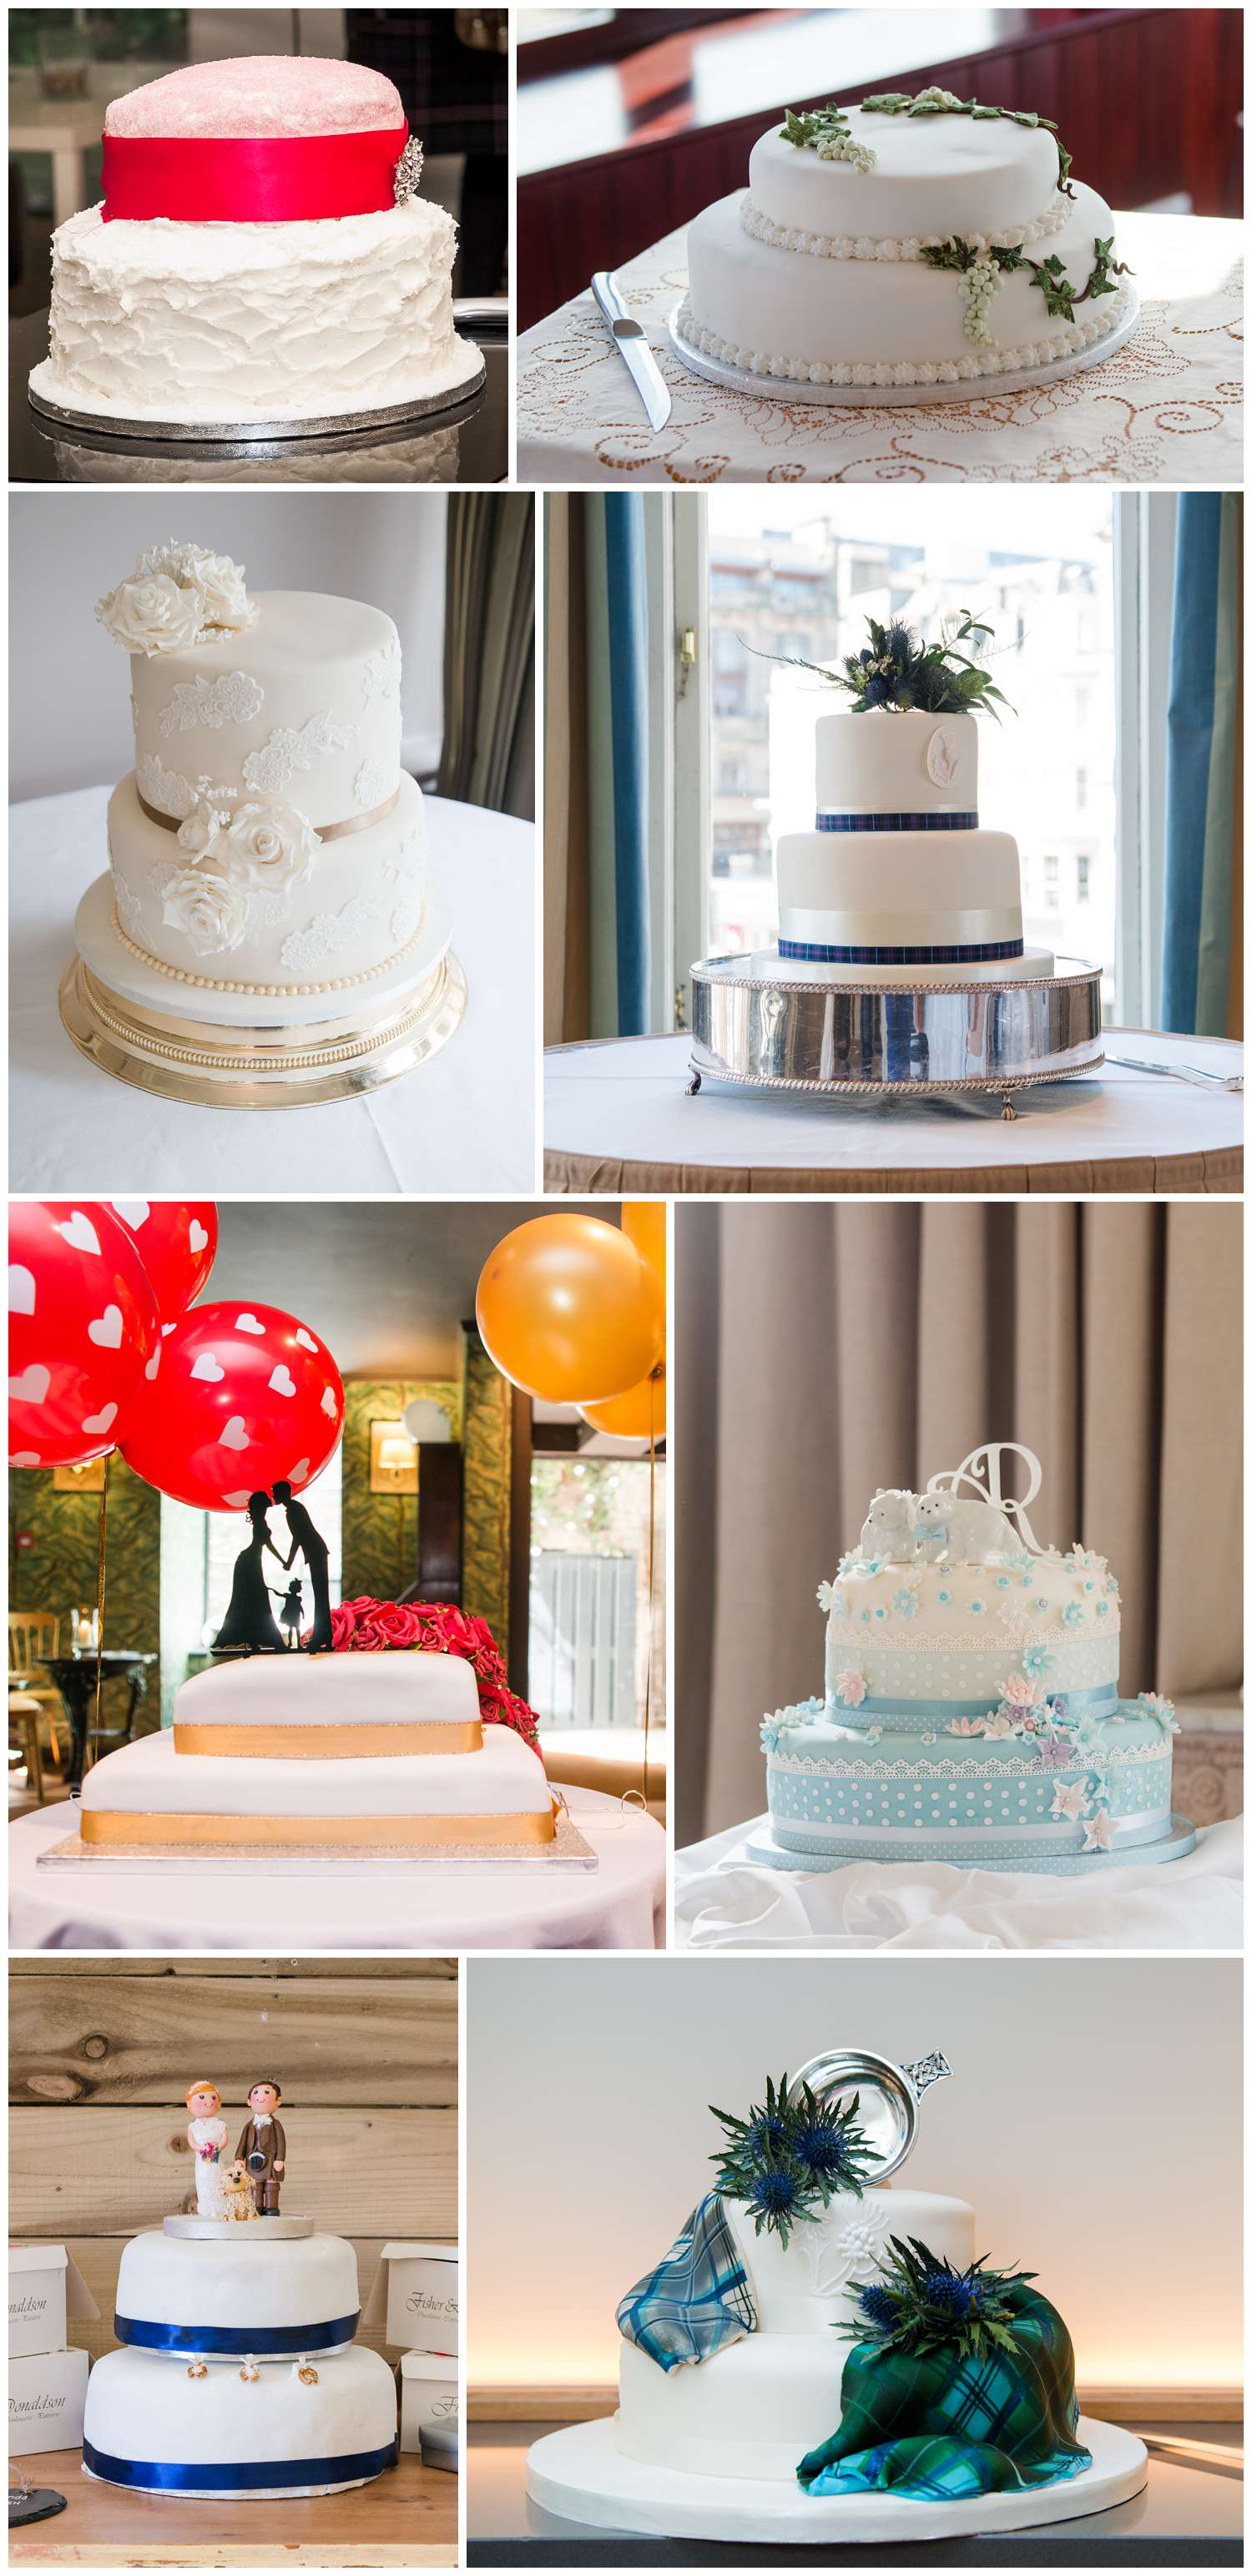 Two-tier wedding cake ideas, ideas for your wedding cake